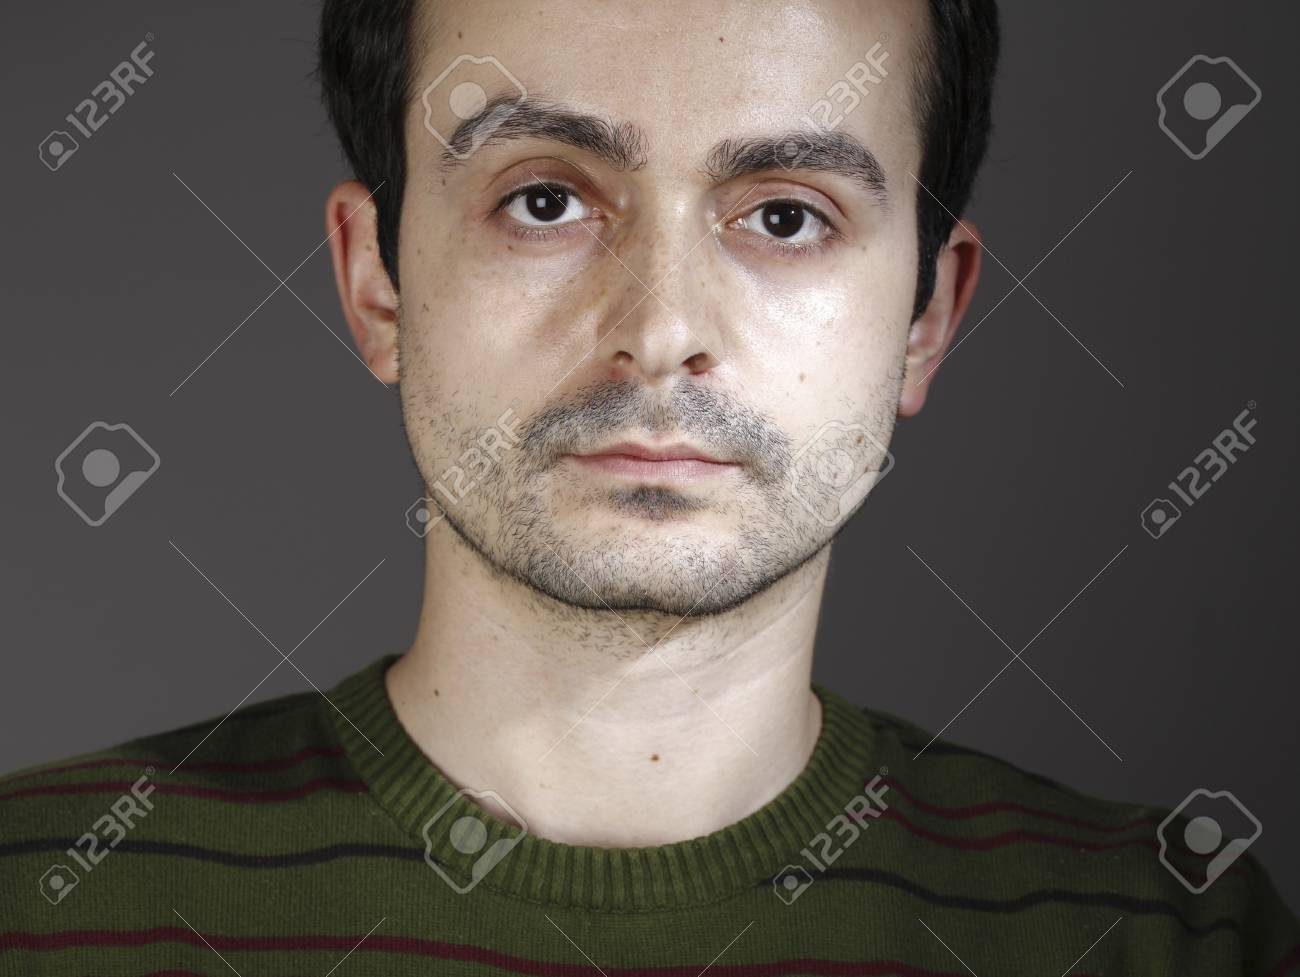 Portrait of a young man, isolated on background Stock Photo - 17605743